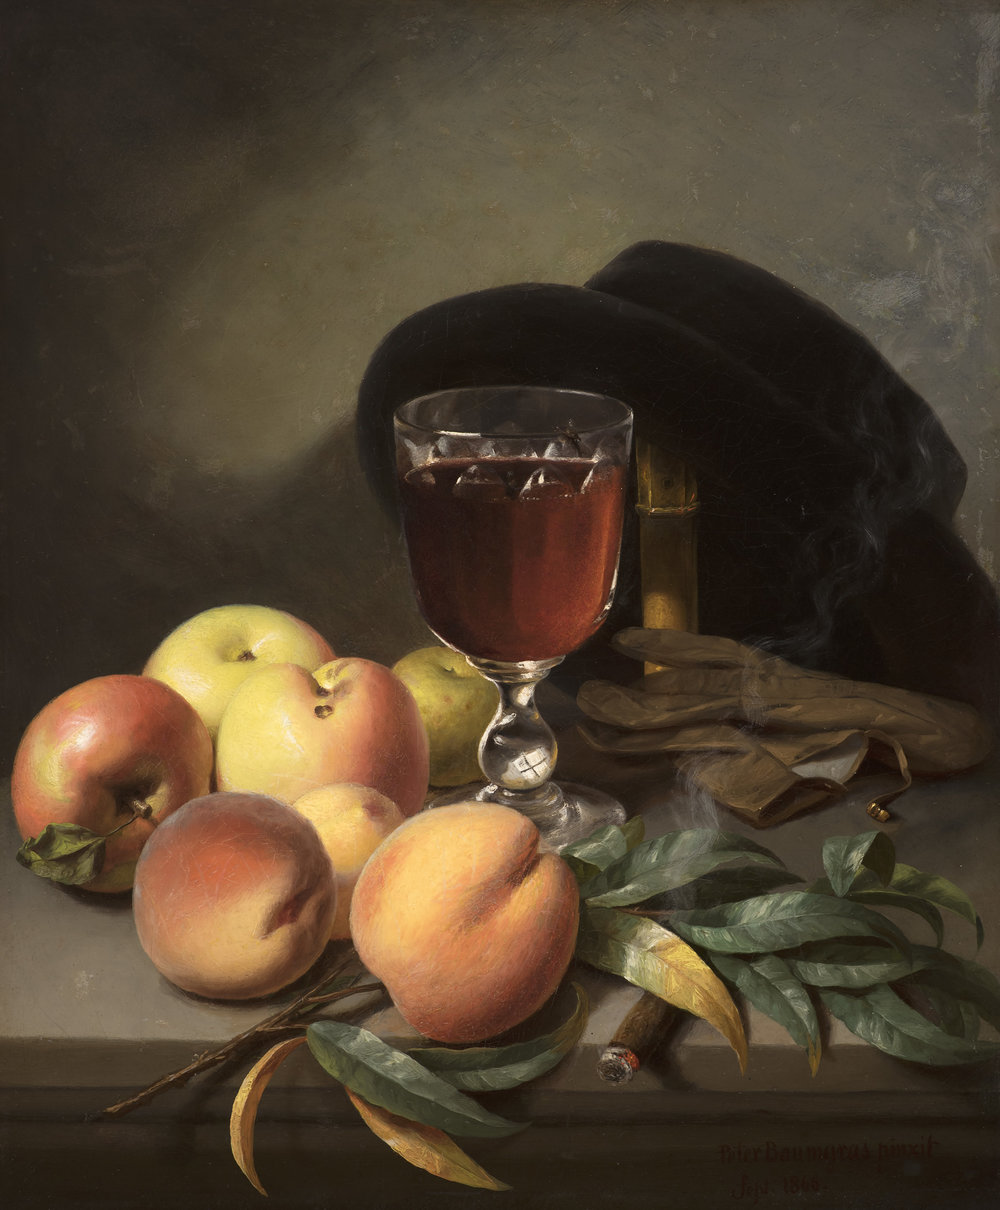 Baumgras_Tabletop with Apples, Peaches, Gloves, Hat, and Cigar_2500.jpg